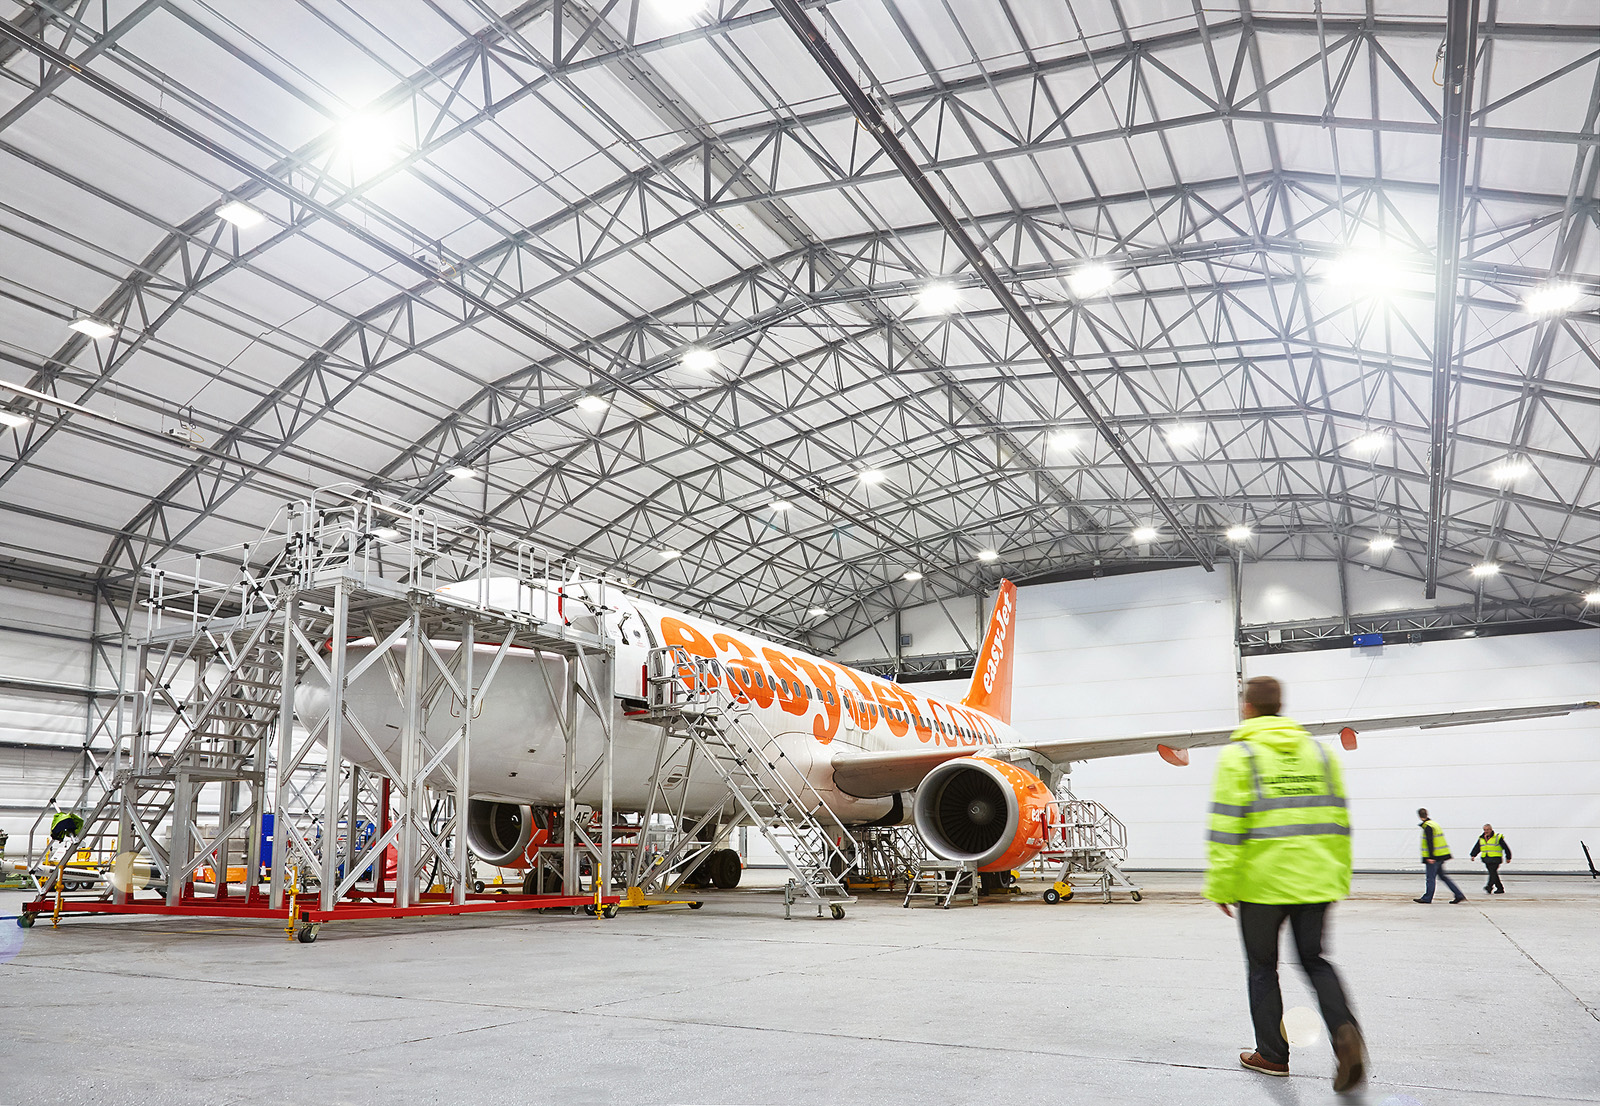 London photography - gatwick airport - easy jet plane in hanger with technician walking to towards plane.  Location image for engineering company  based in Surrey